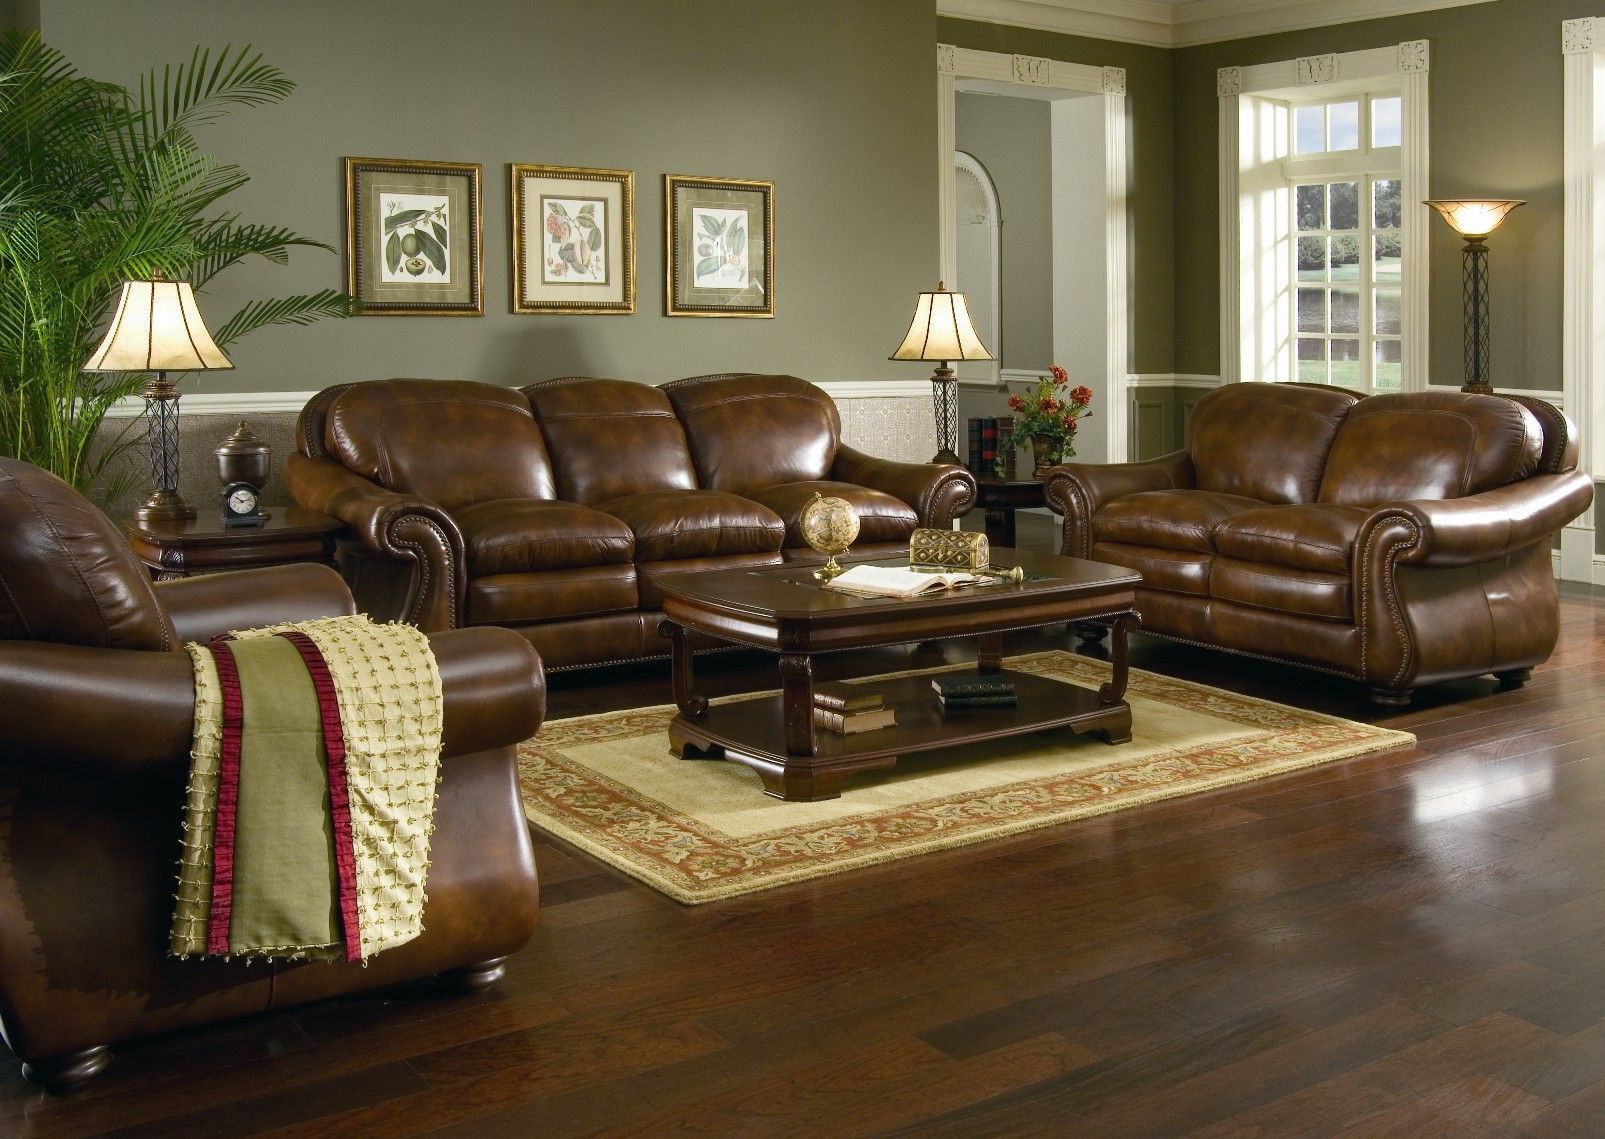 Color Schemes For Living Rooms With Brown Furniture Brown Leather Sofa Set For Living Room With Dark Hardwood Floors